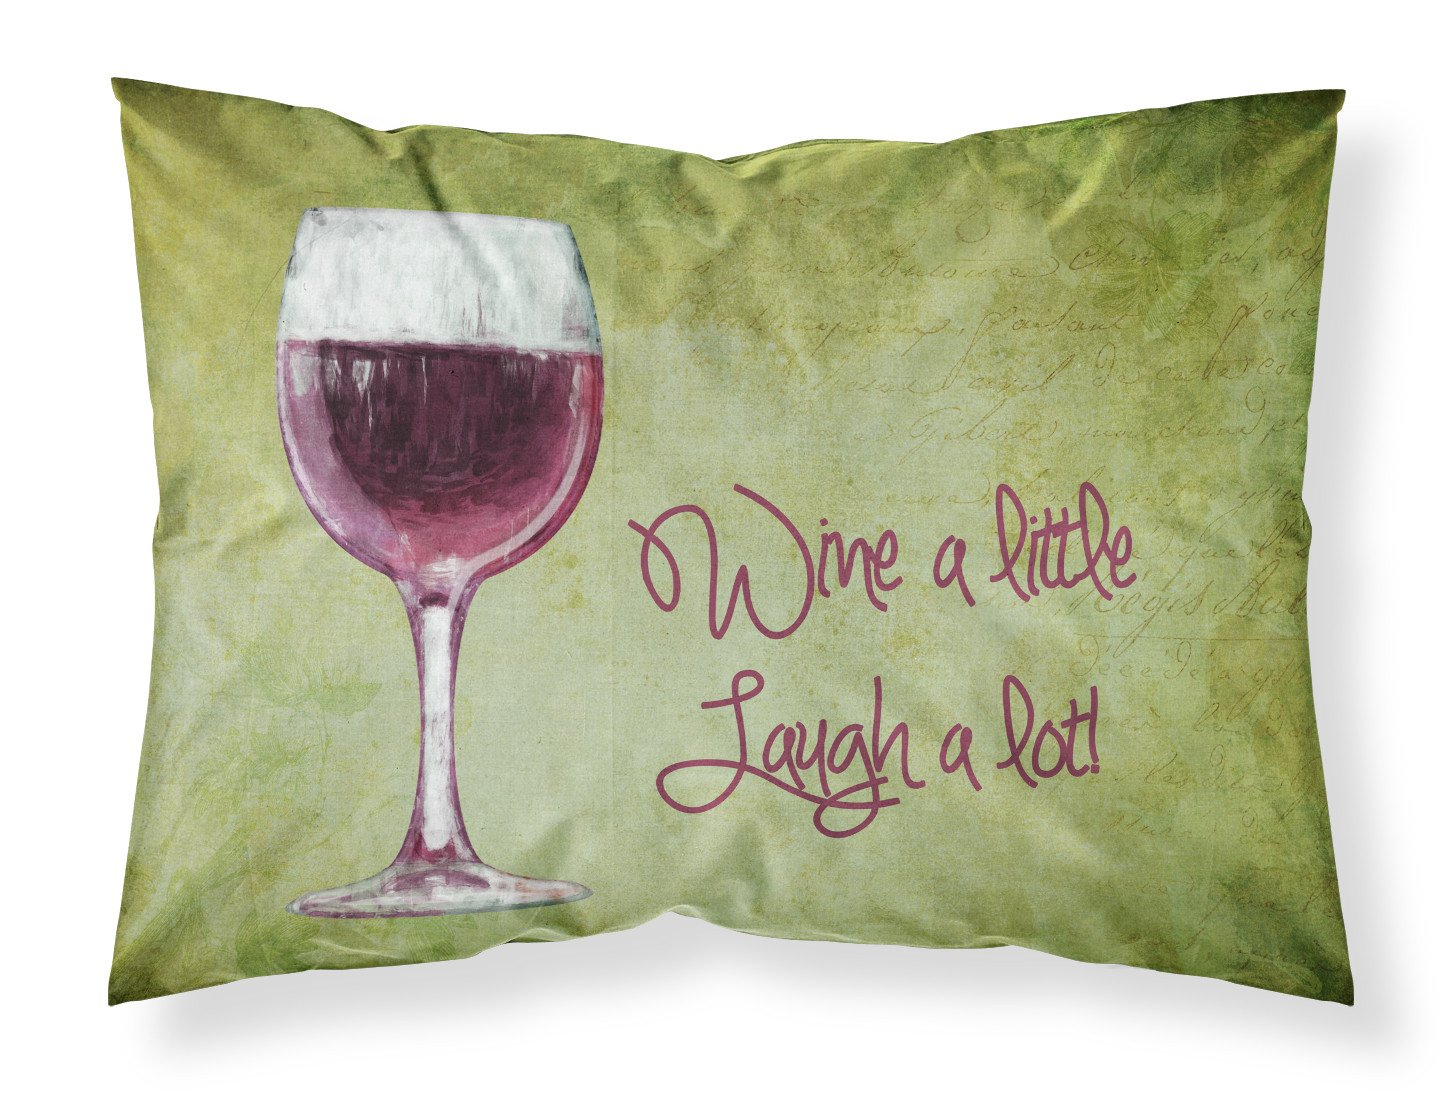 Wine a little laugh a lot Moisture wicking Fabric standard pillowcase SB3067PILLOWCASE by Caroline's Treasures